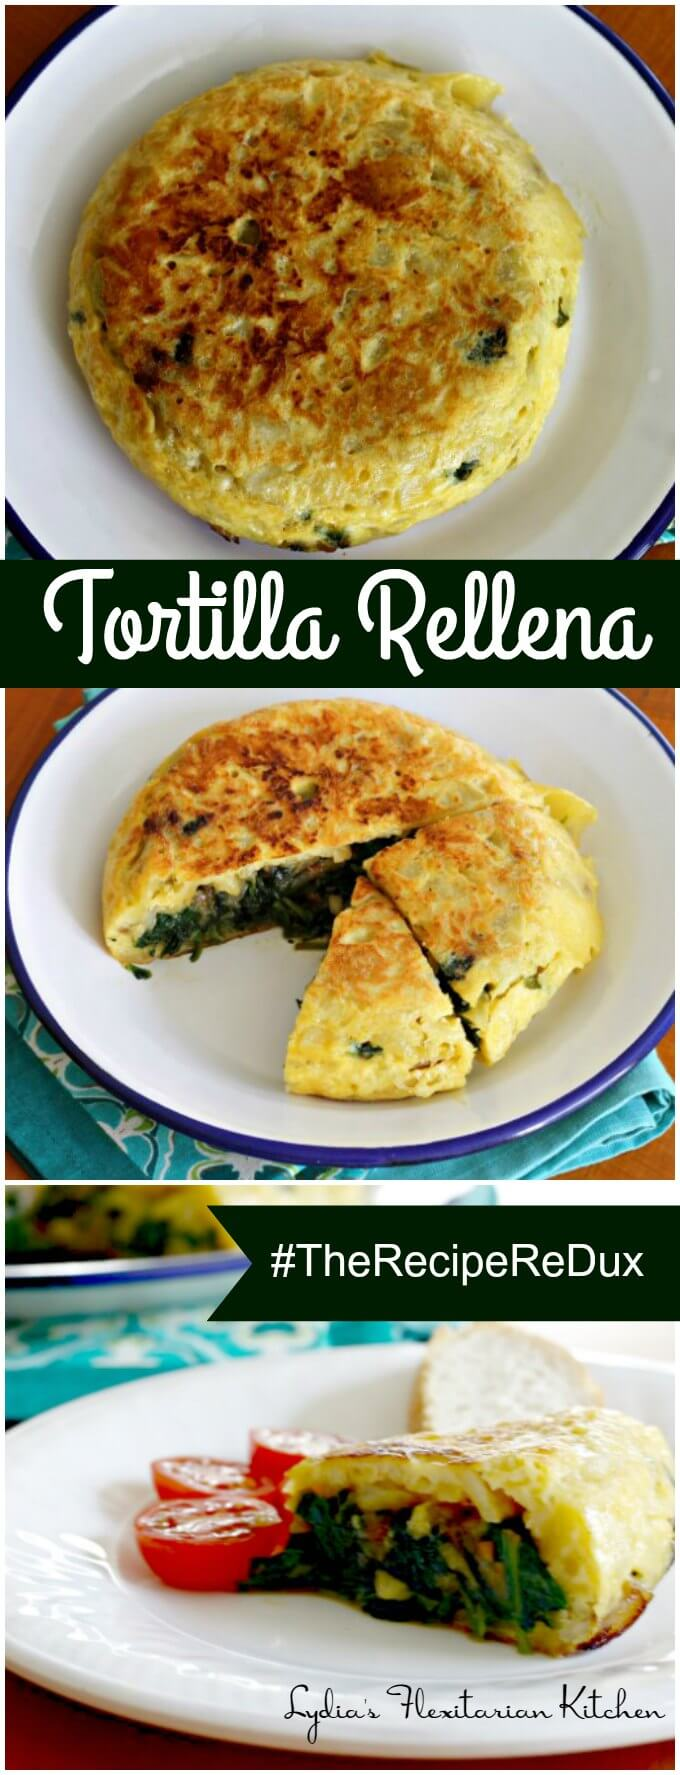 Tortilla Rellena ~ Spanish Omelet Stuffed With Spinach and Onions ~ #TheRecipeReDux ~ Lydia's Flexitarian Kitchen